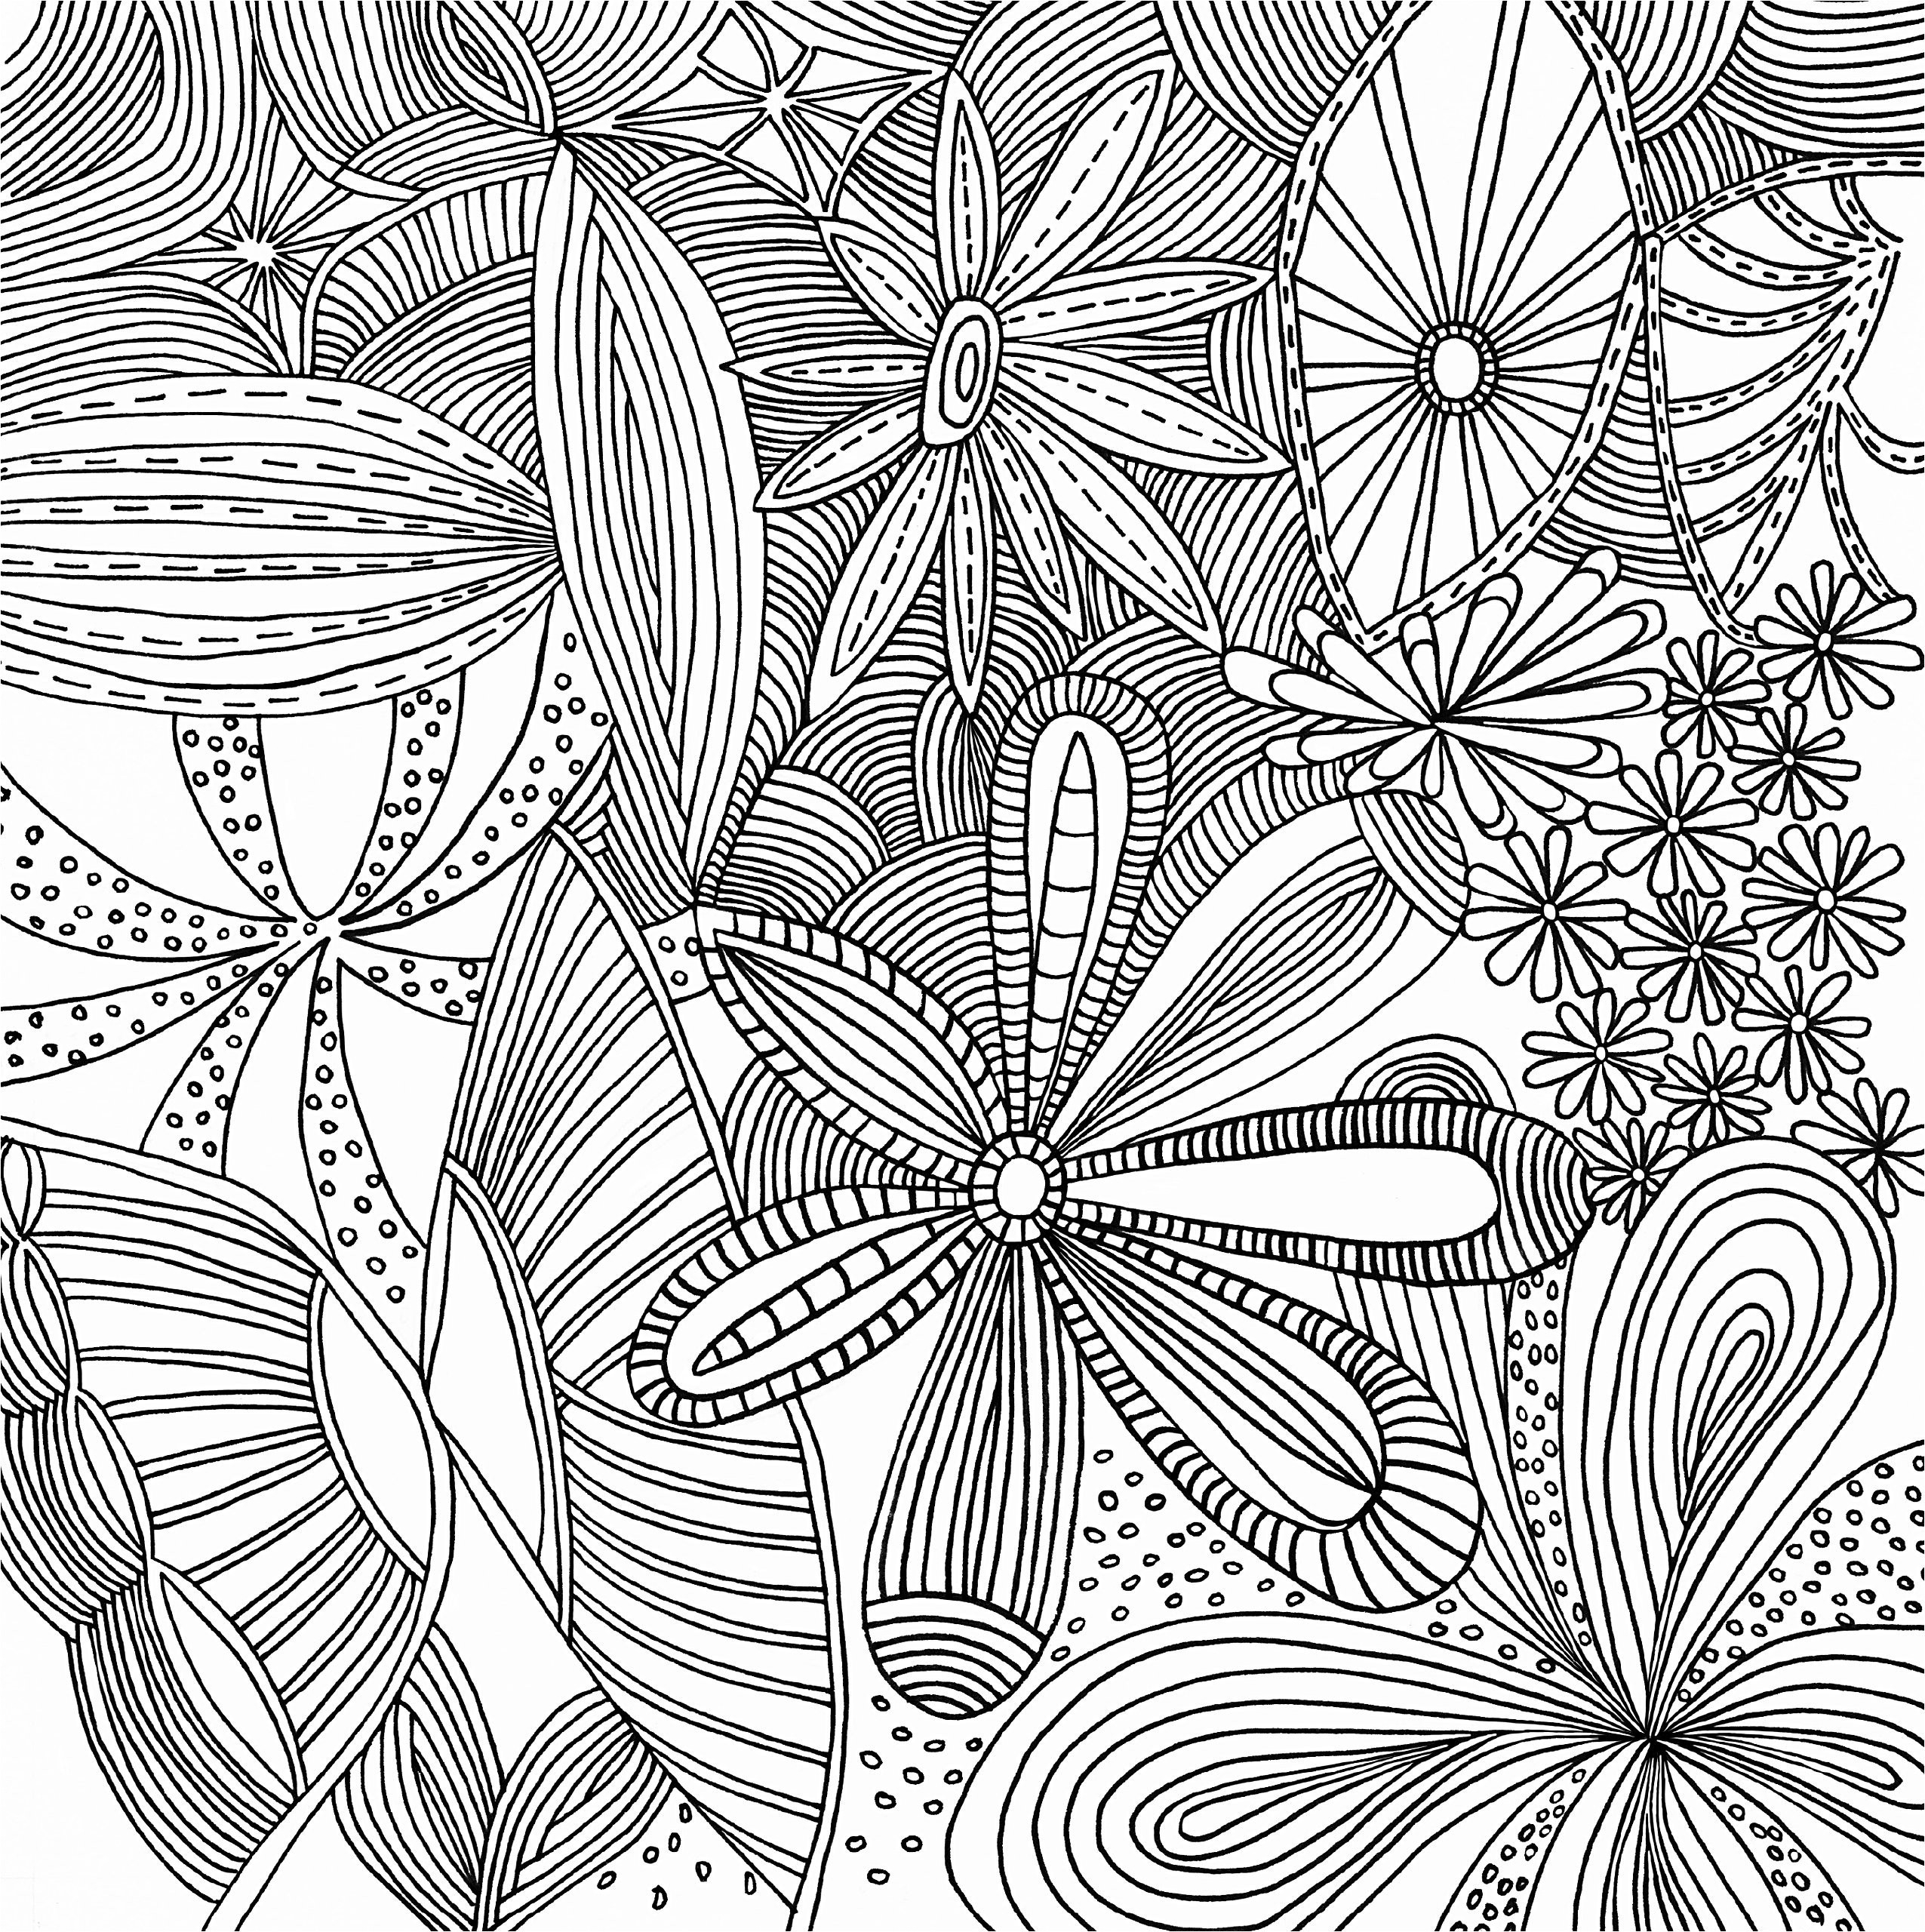 Tessellation Coloring Pages Free Printable  to Print 15g - To print for your project